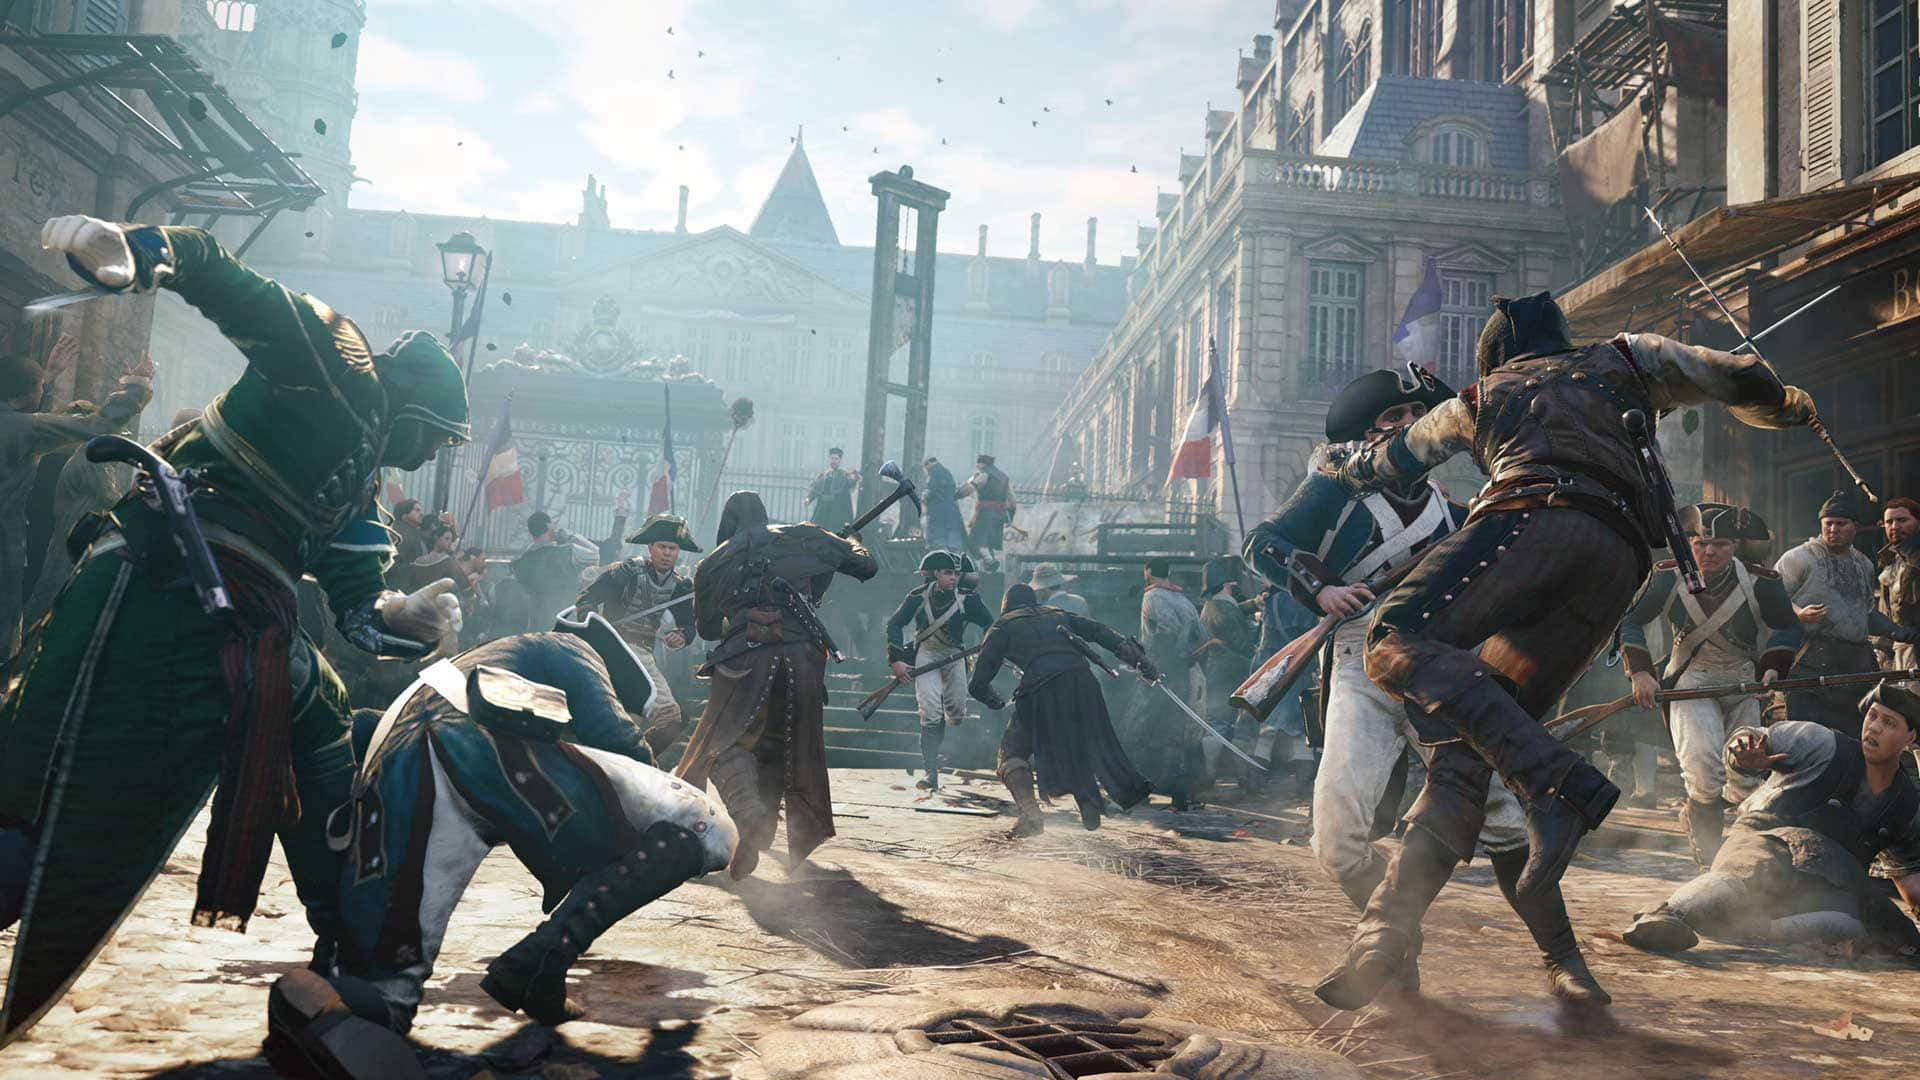 Assassin's Creed Unity's Steam Page Gets Flooded With Positive Comments After Ubisoft's Donation To Notre Dame Church